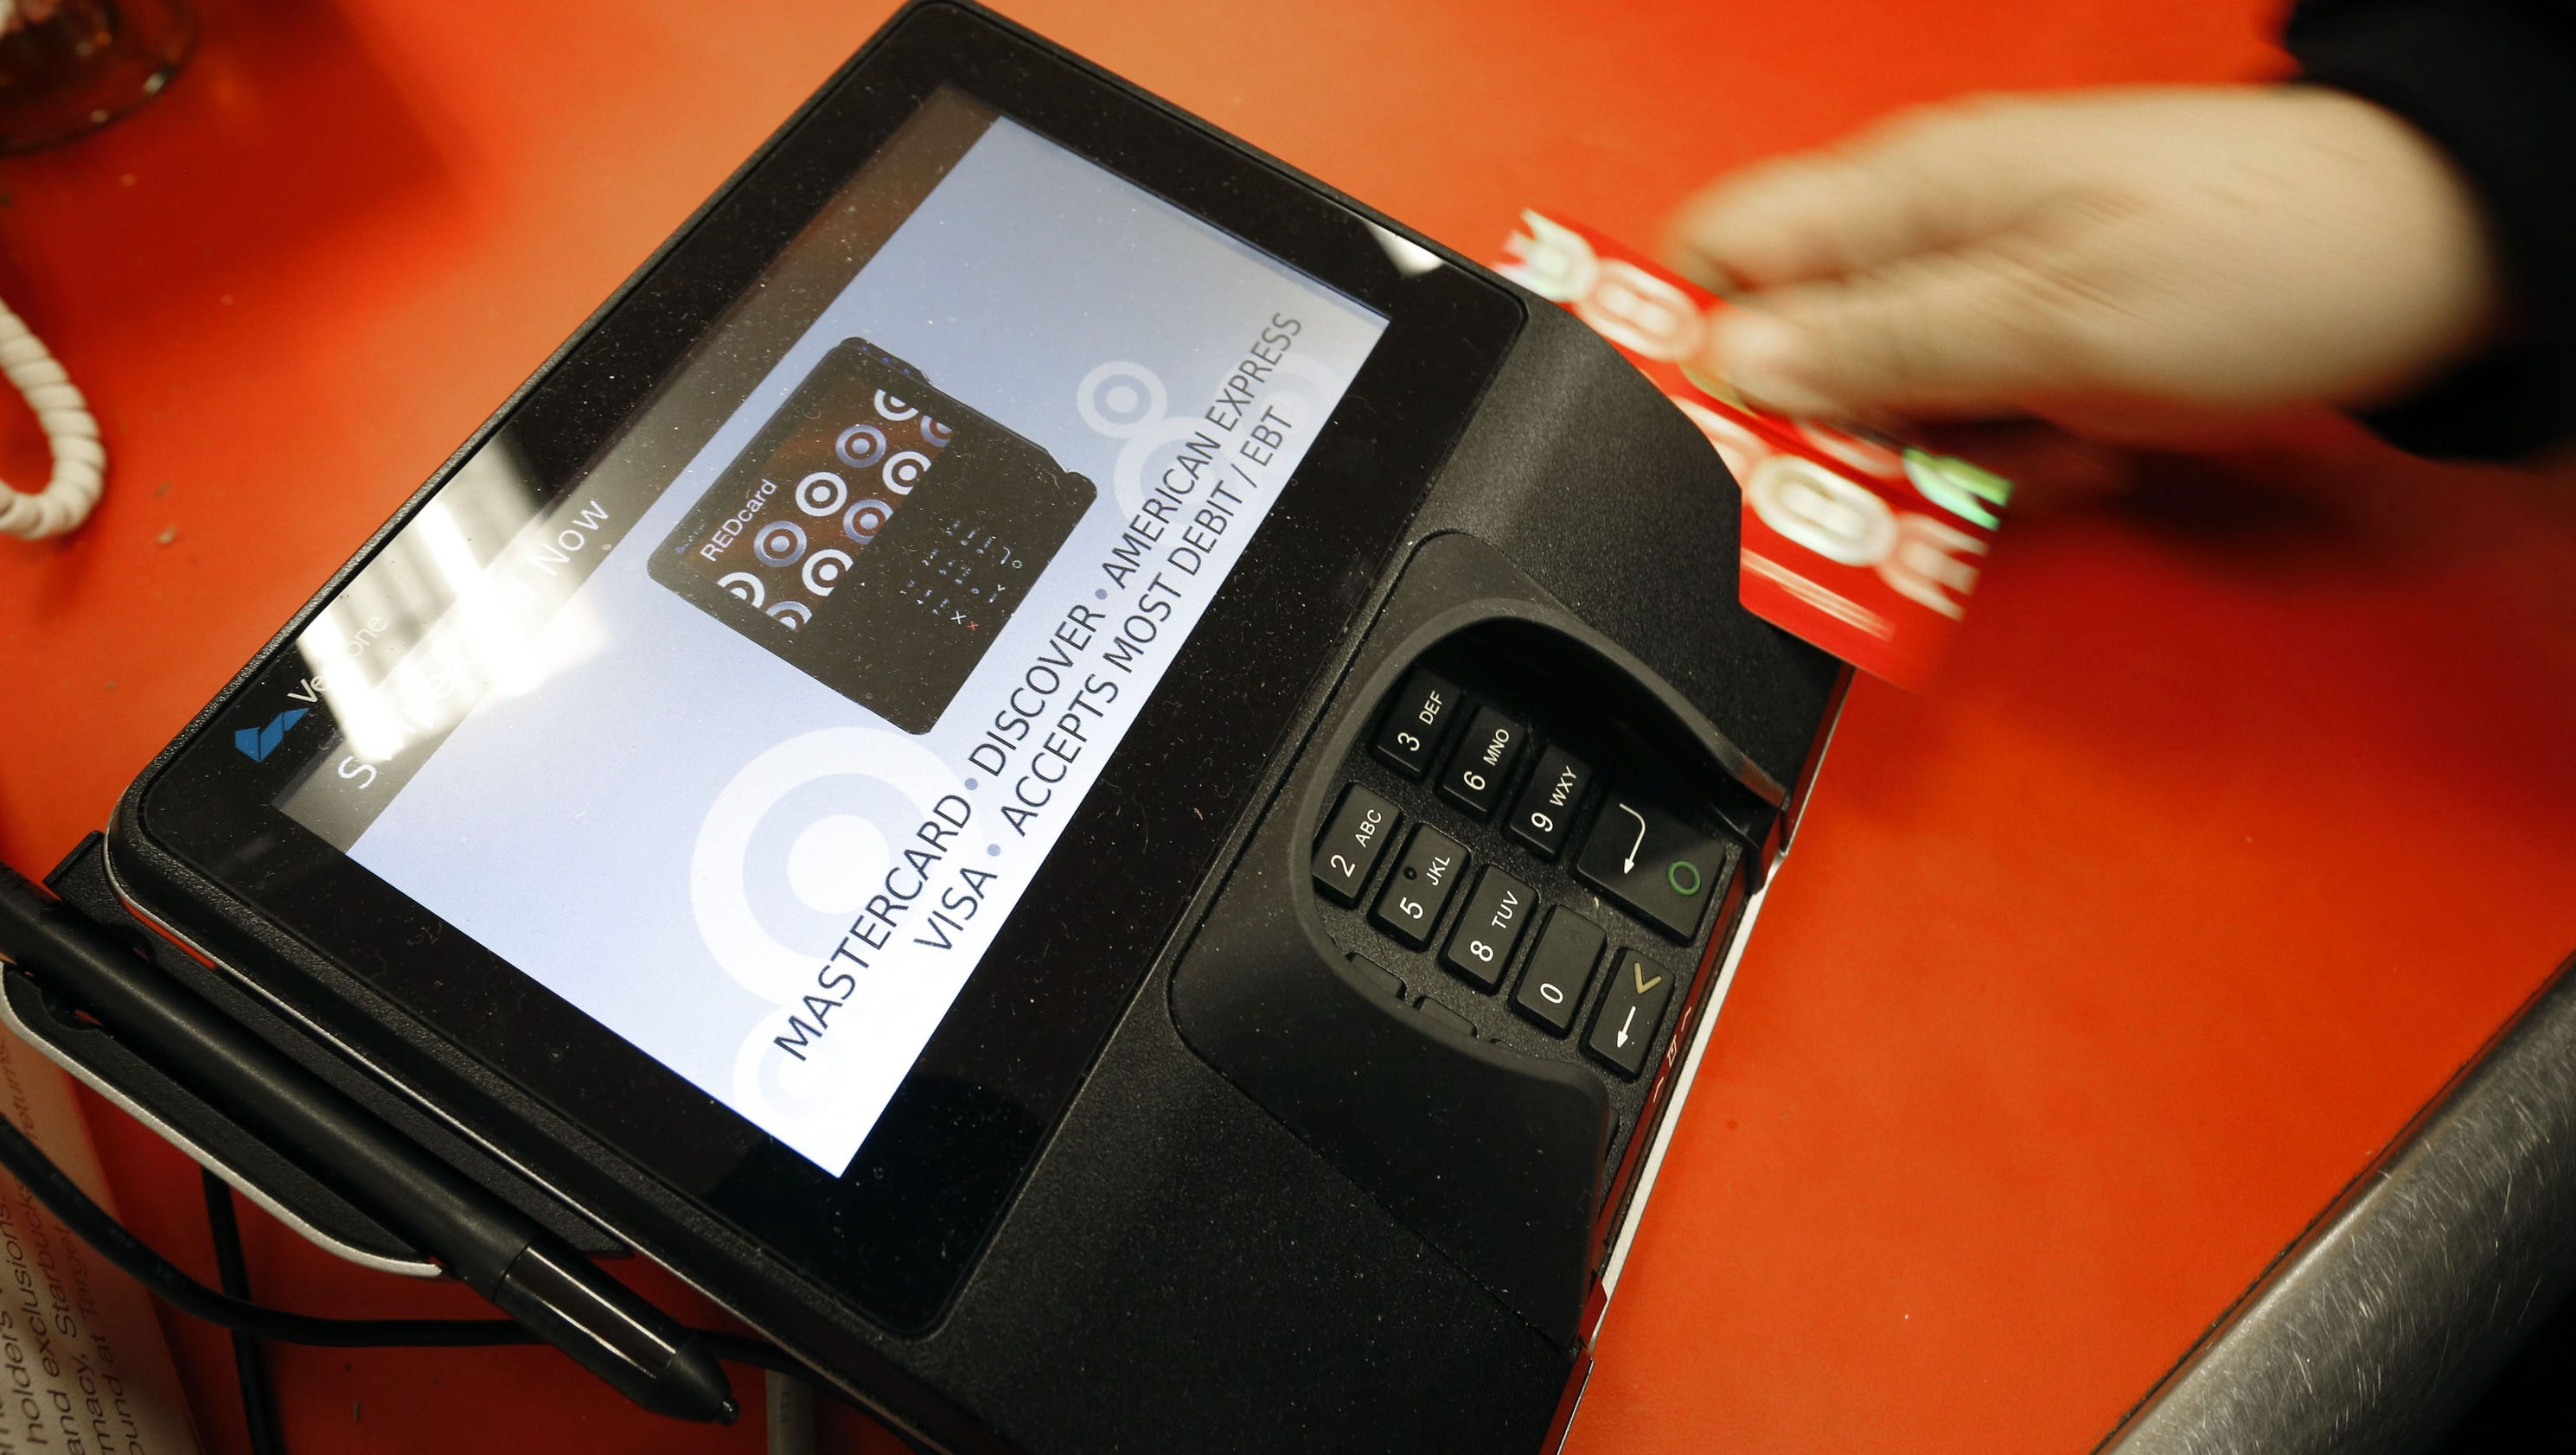 Credit cards hacks, breaches and thefts: Why they keep happening